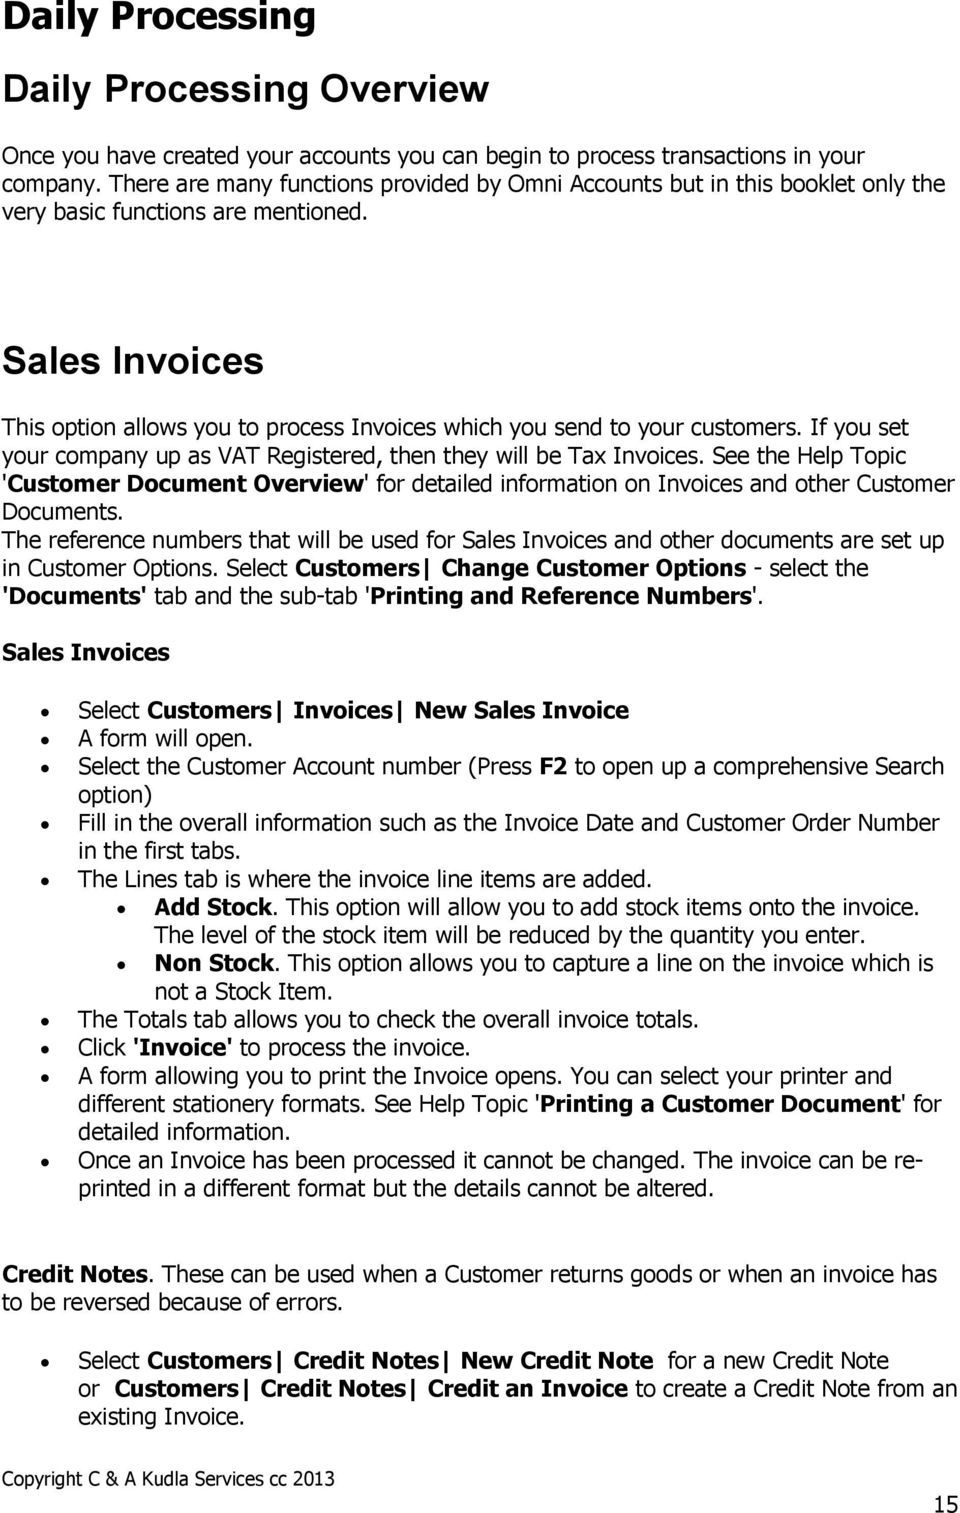 Sales Invoices This option allows you to process Invoices which you send to your customers. If you set your company up as VAT Registered, then they will be Tax Invoices.